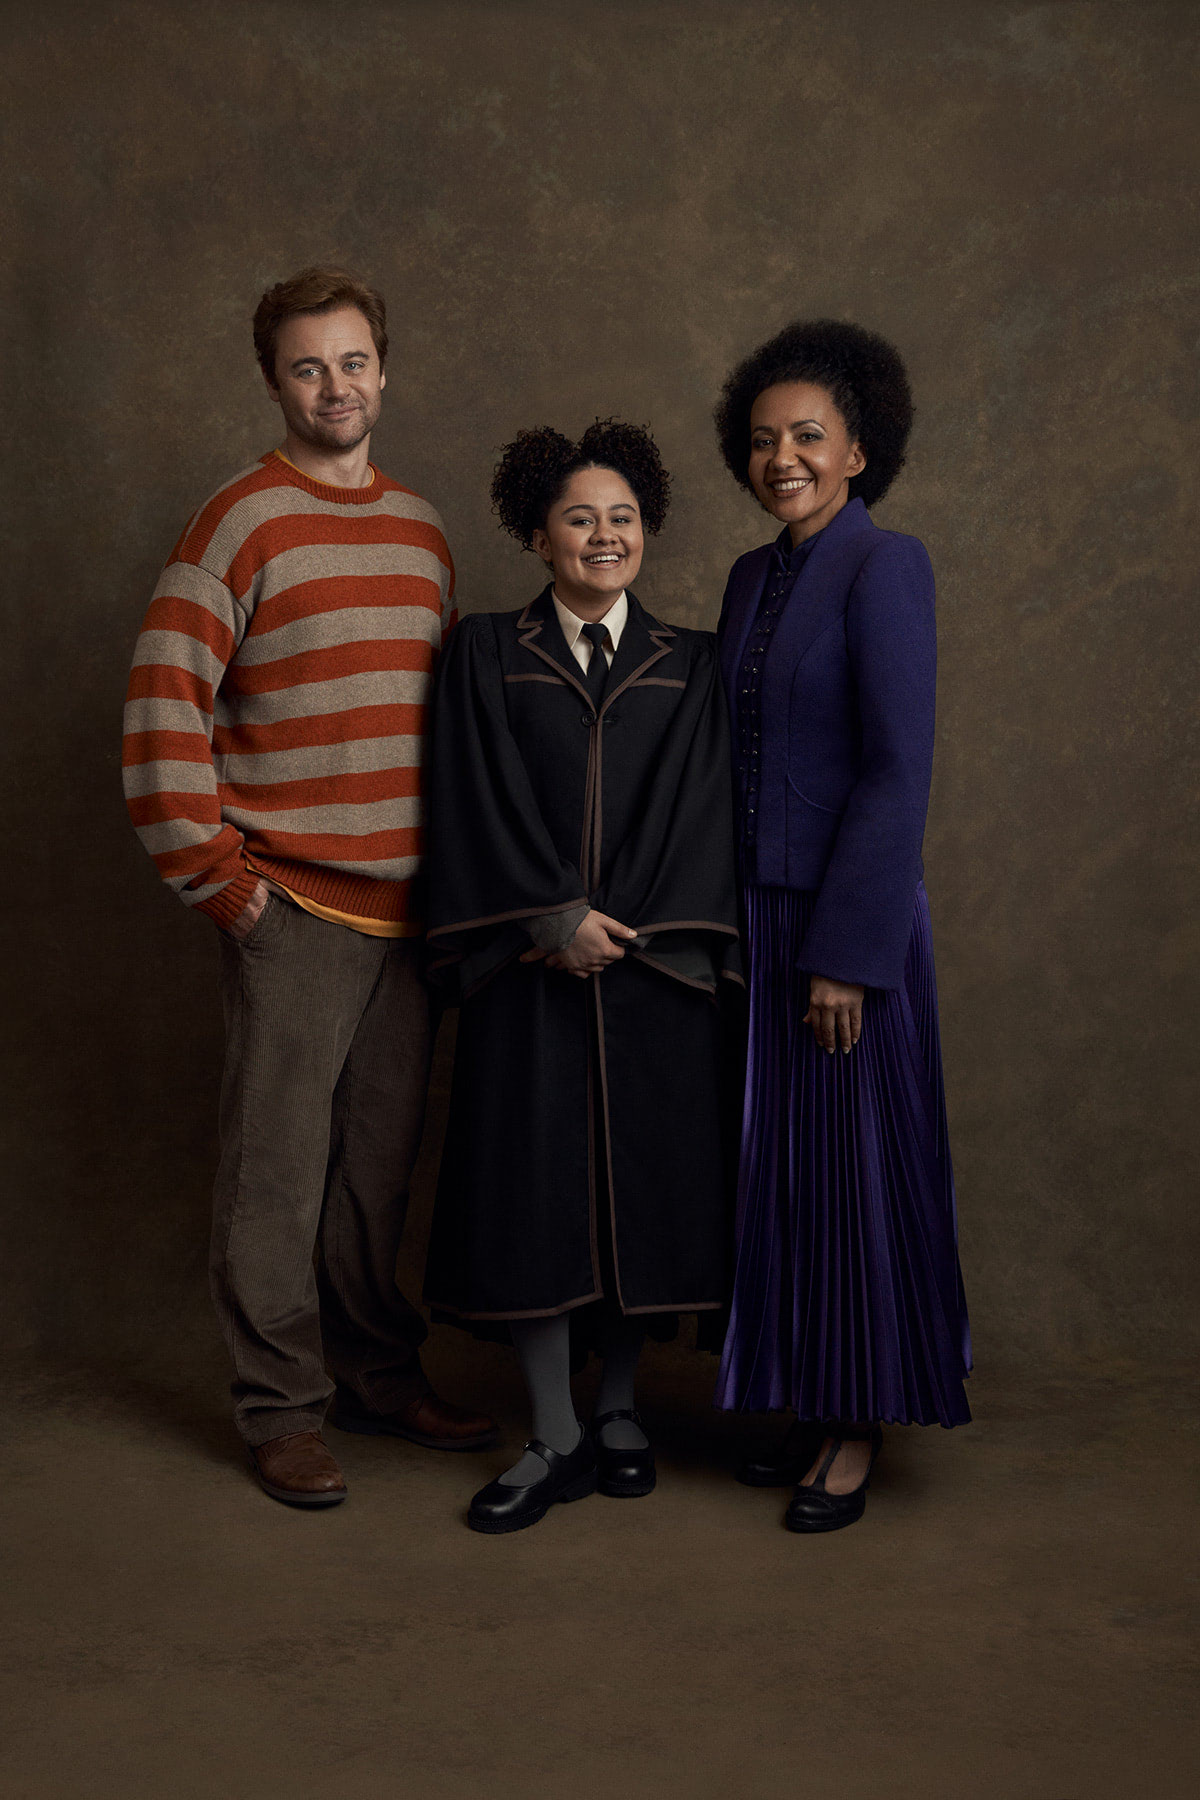 Ron, Rose and Hermione in the Melbourne production of 'Cursed Child'